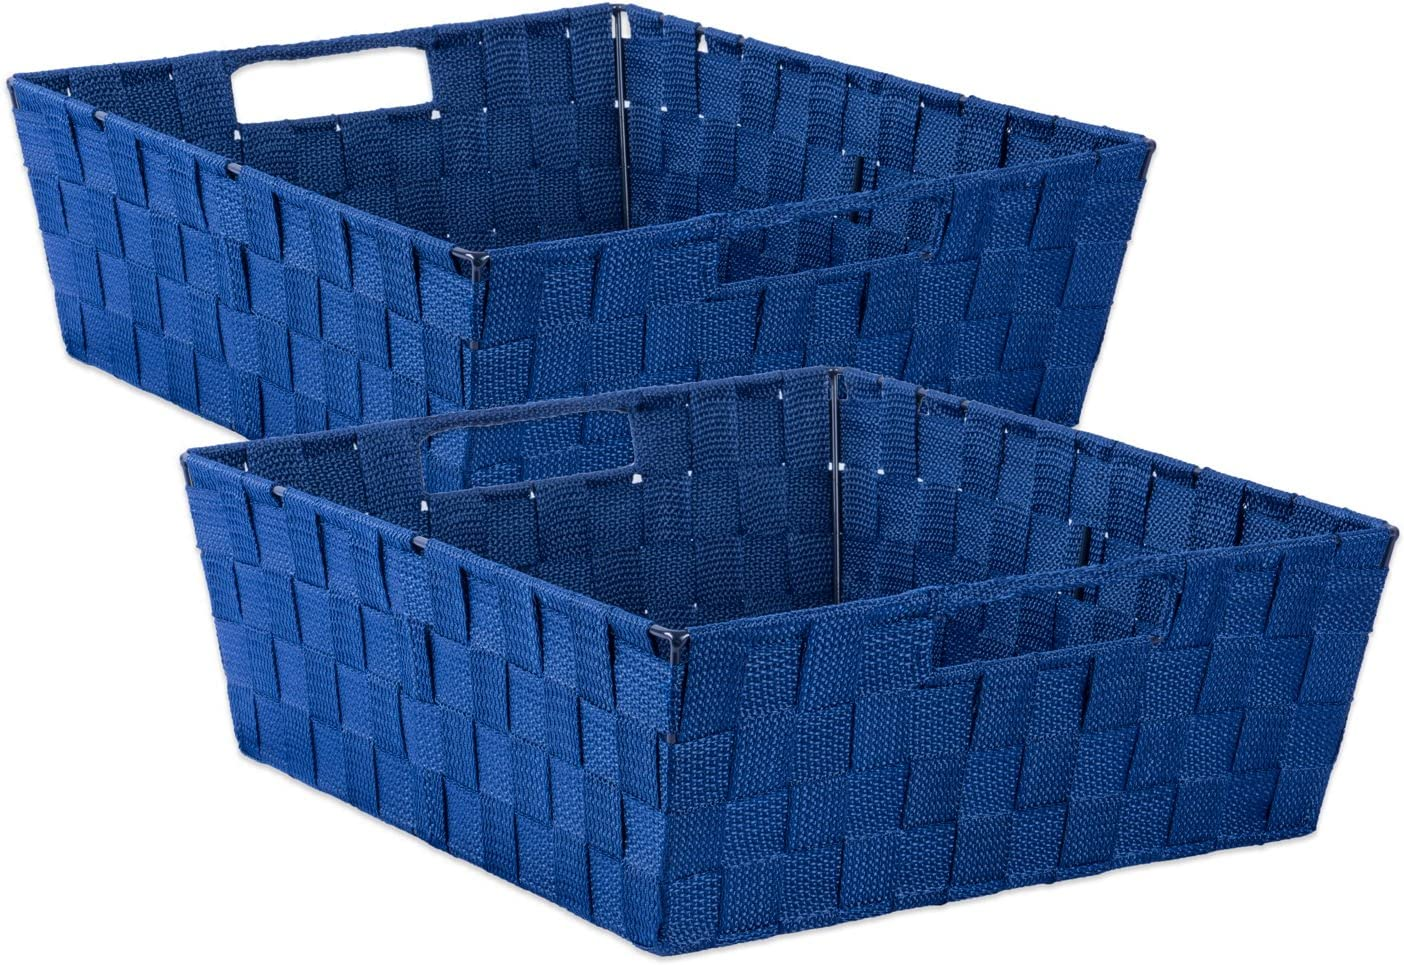 "DII Durable Trapezoid Woven Nylon Storage Bin or Basket for Organizing Your Home, Office, or Closets (Tray - 13x15x5"") Navy - Set of 2"